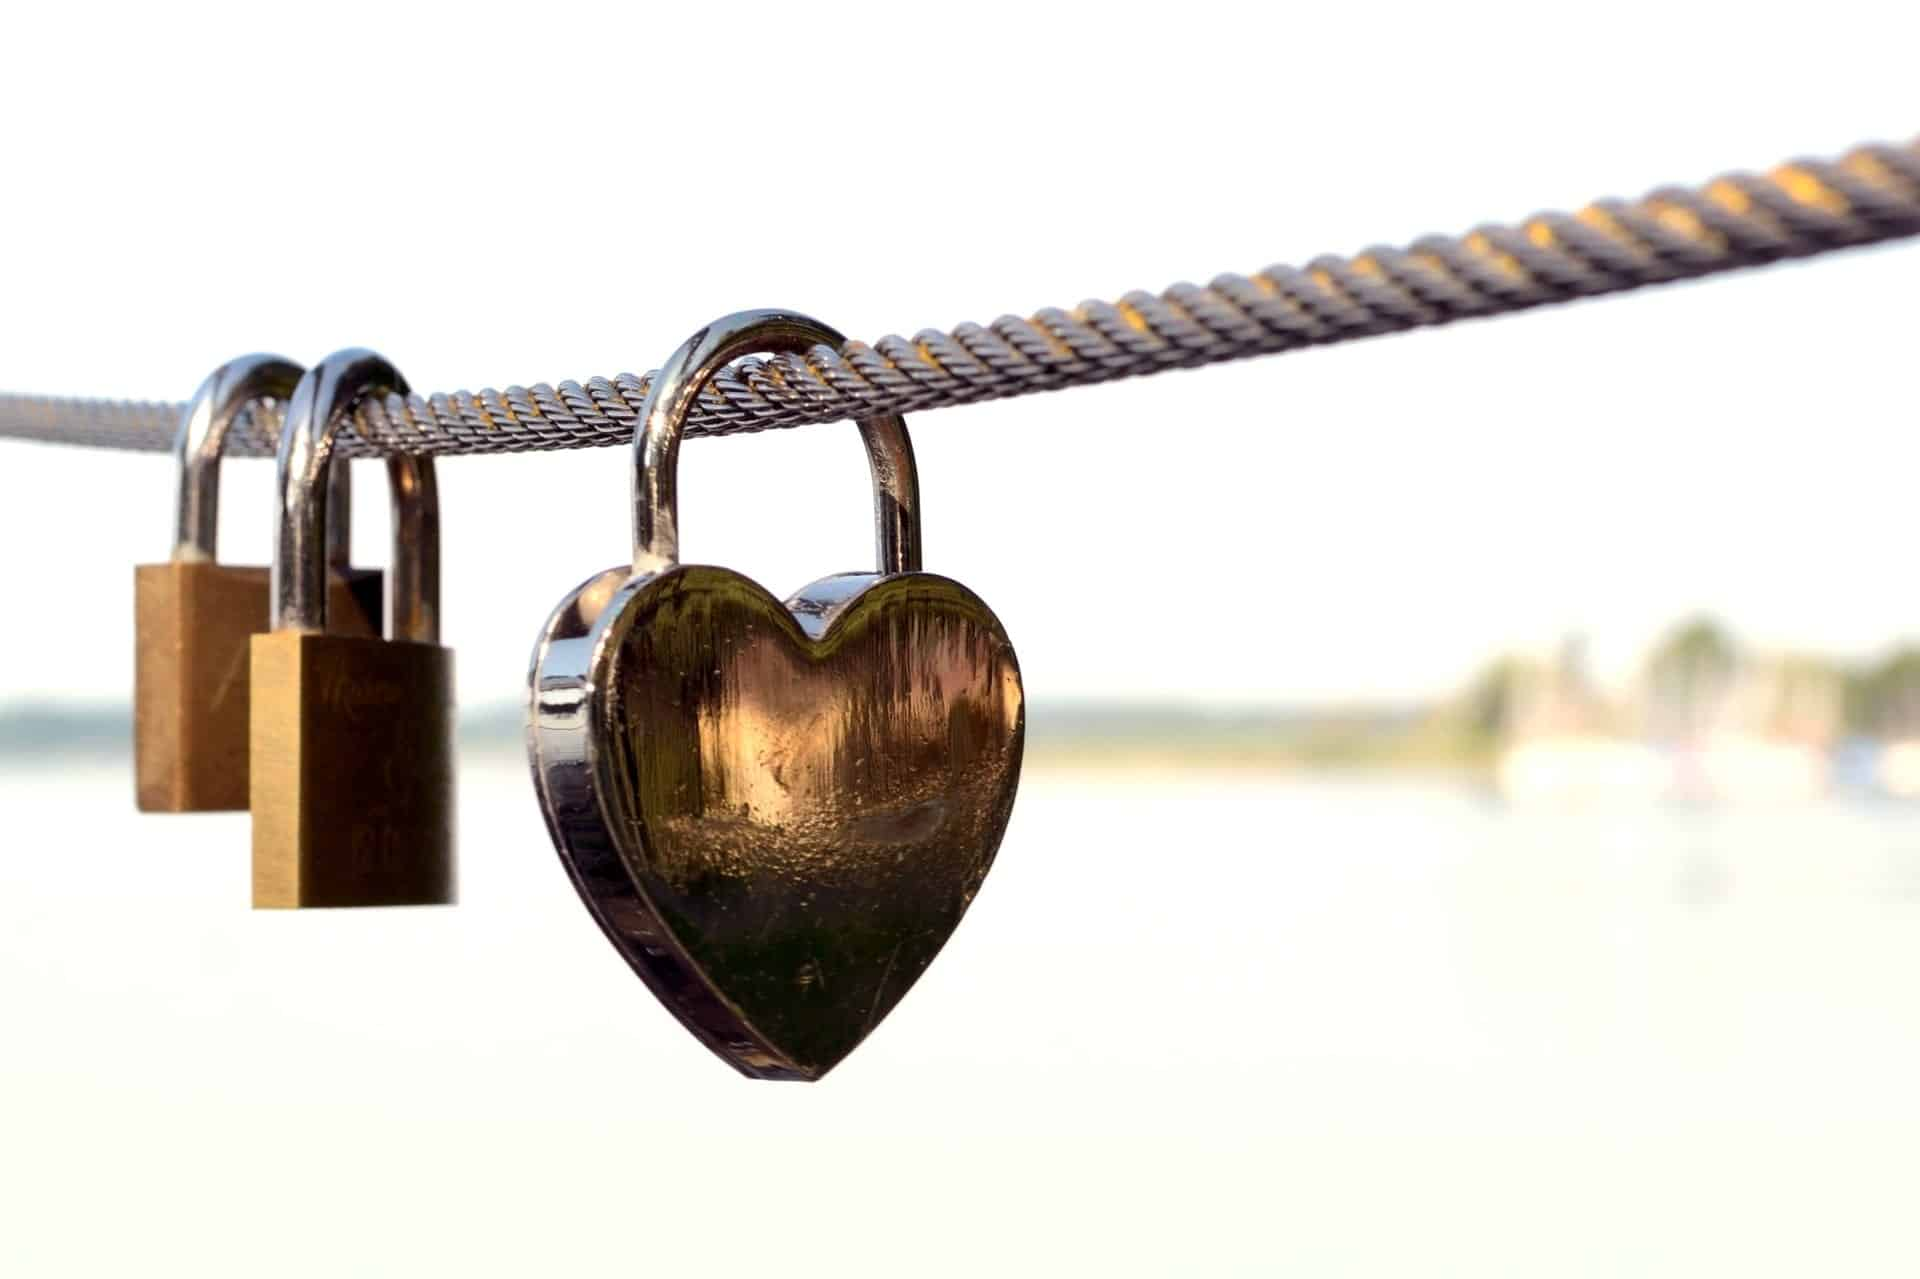 heart locks on chain pexels-photo-256738